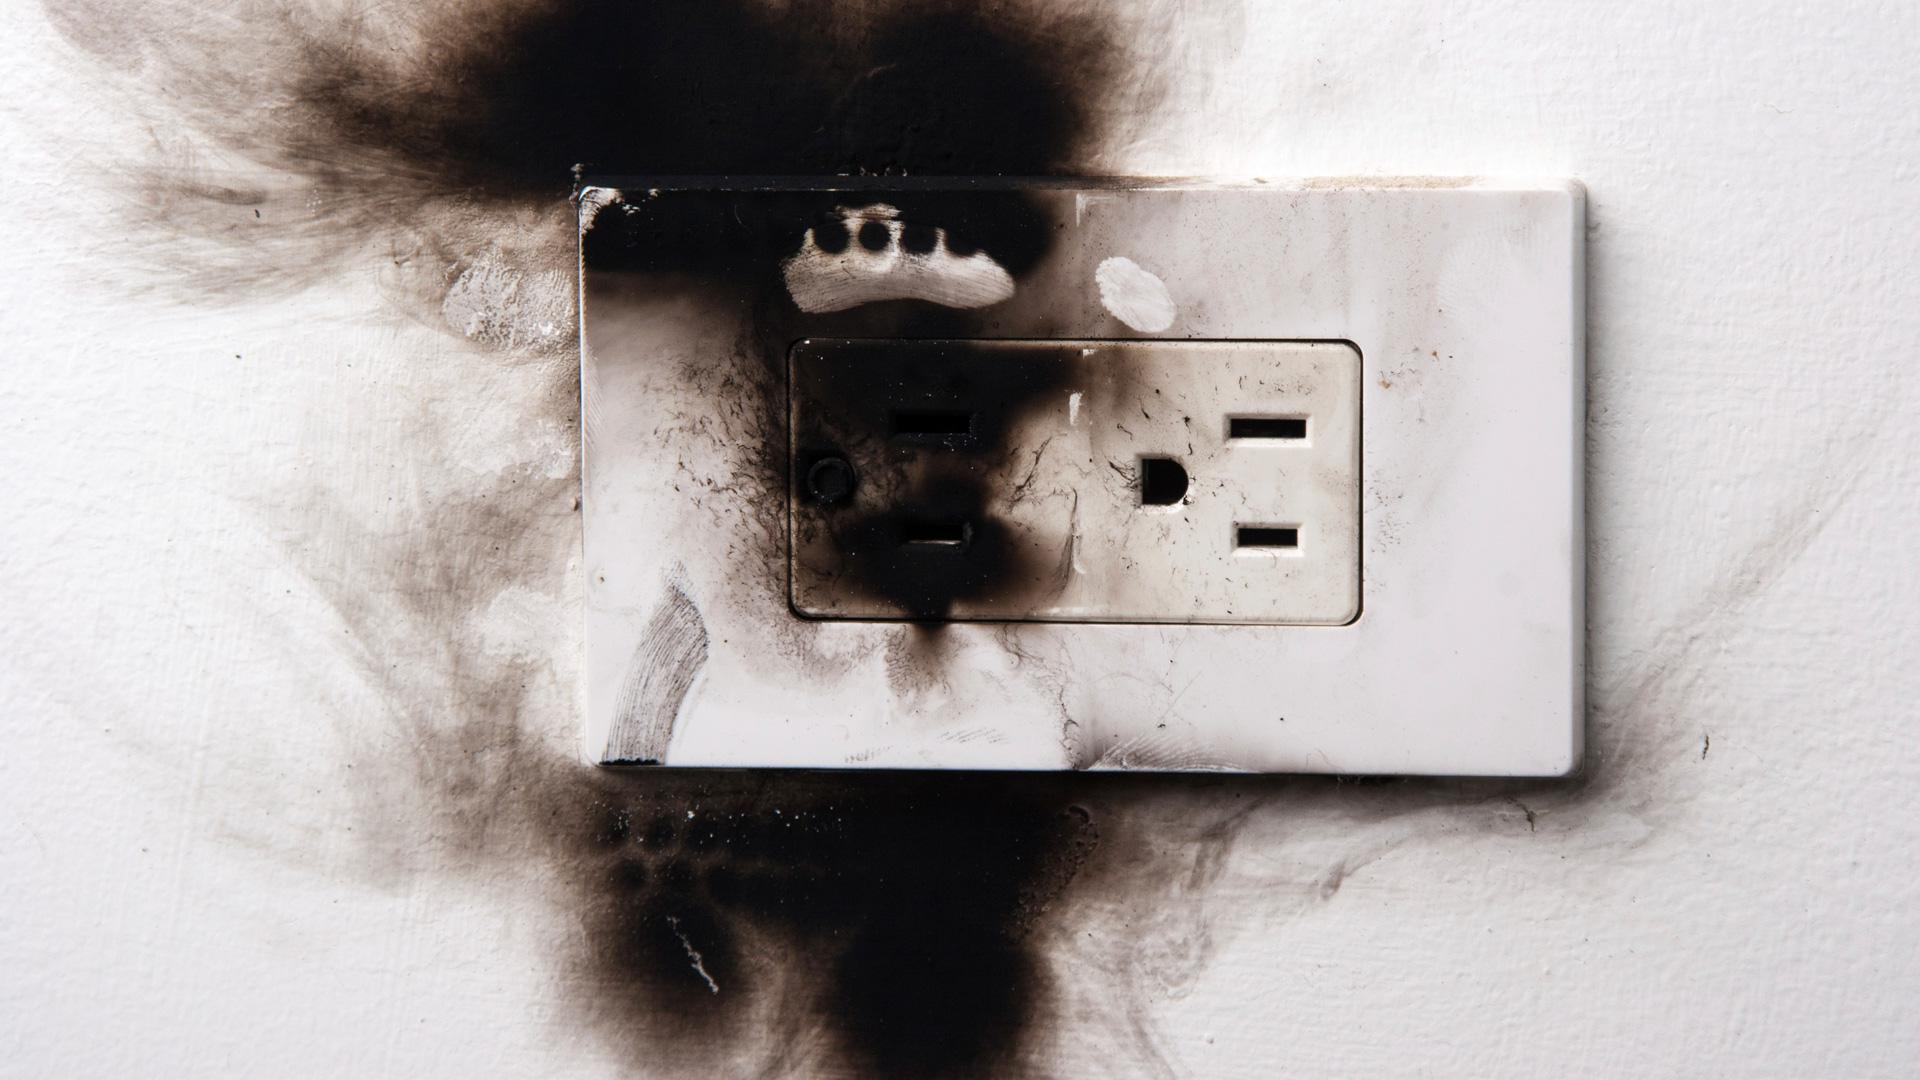 Could Your Electrical Outlet Set Home On Fire Sheknows Half Hot Wiring Diagram As Well Light Switch Image Alixkreil Istock 360 Getty Images